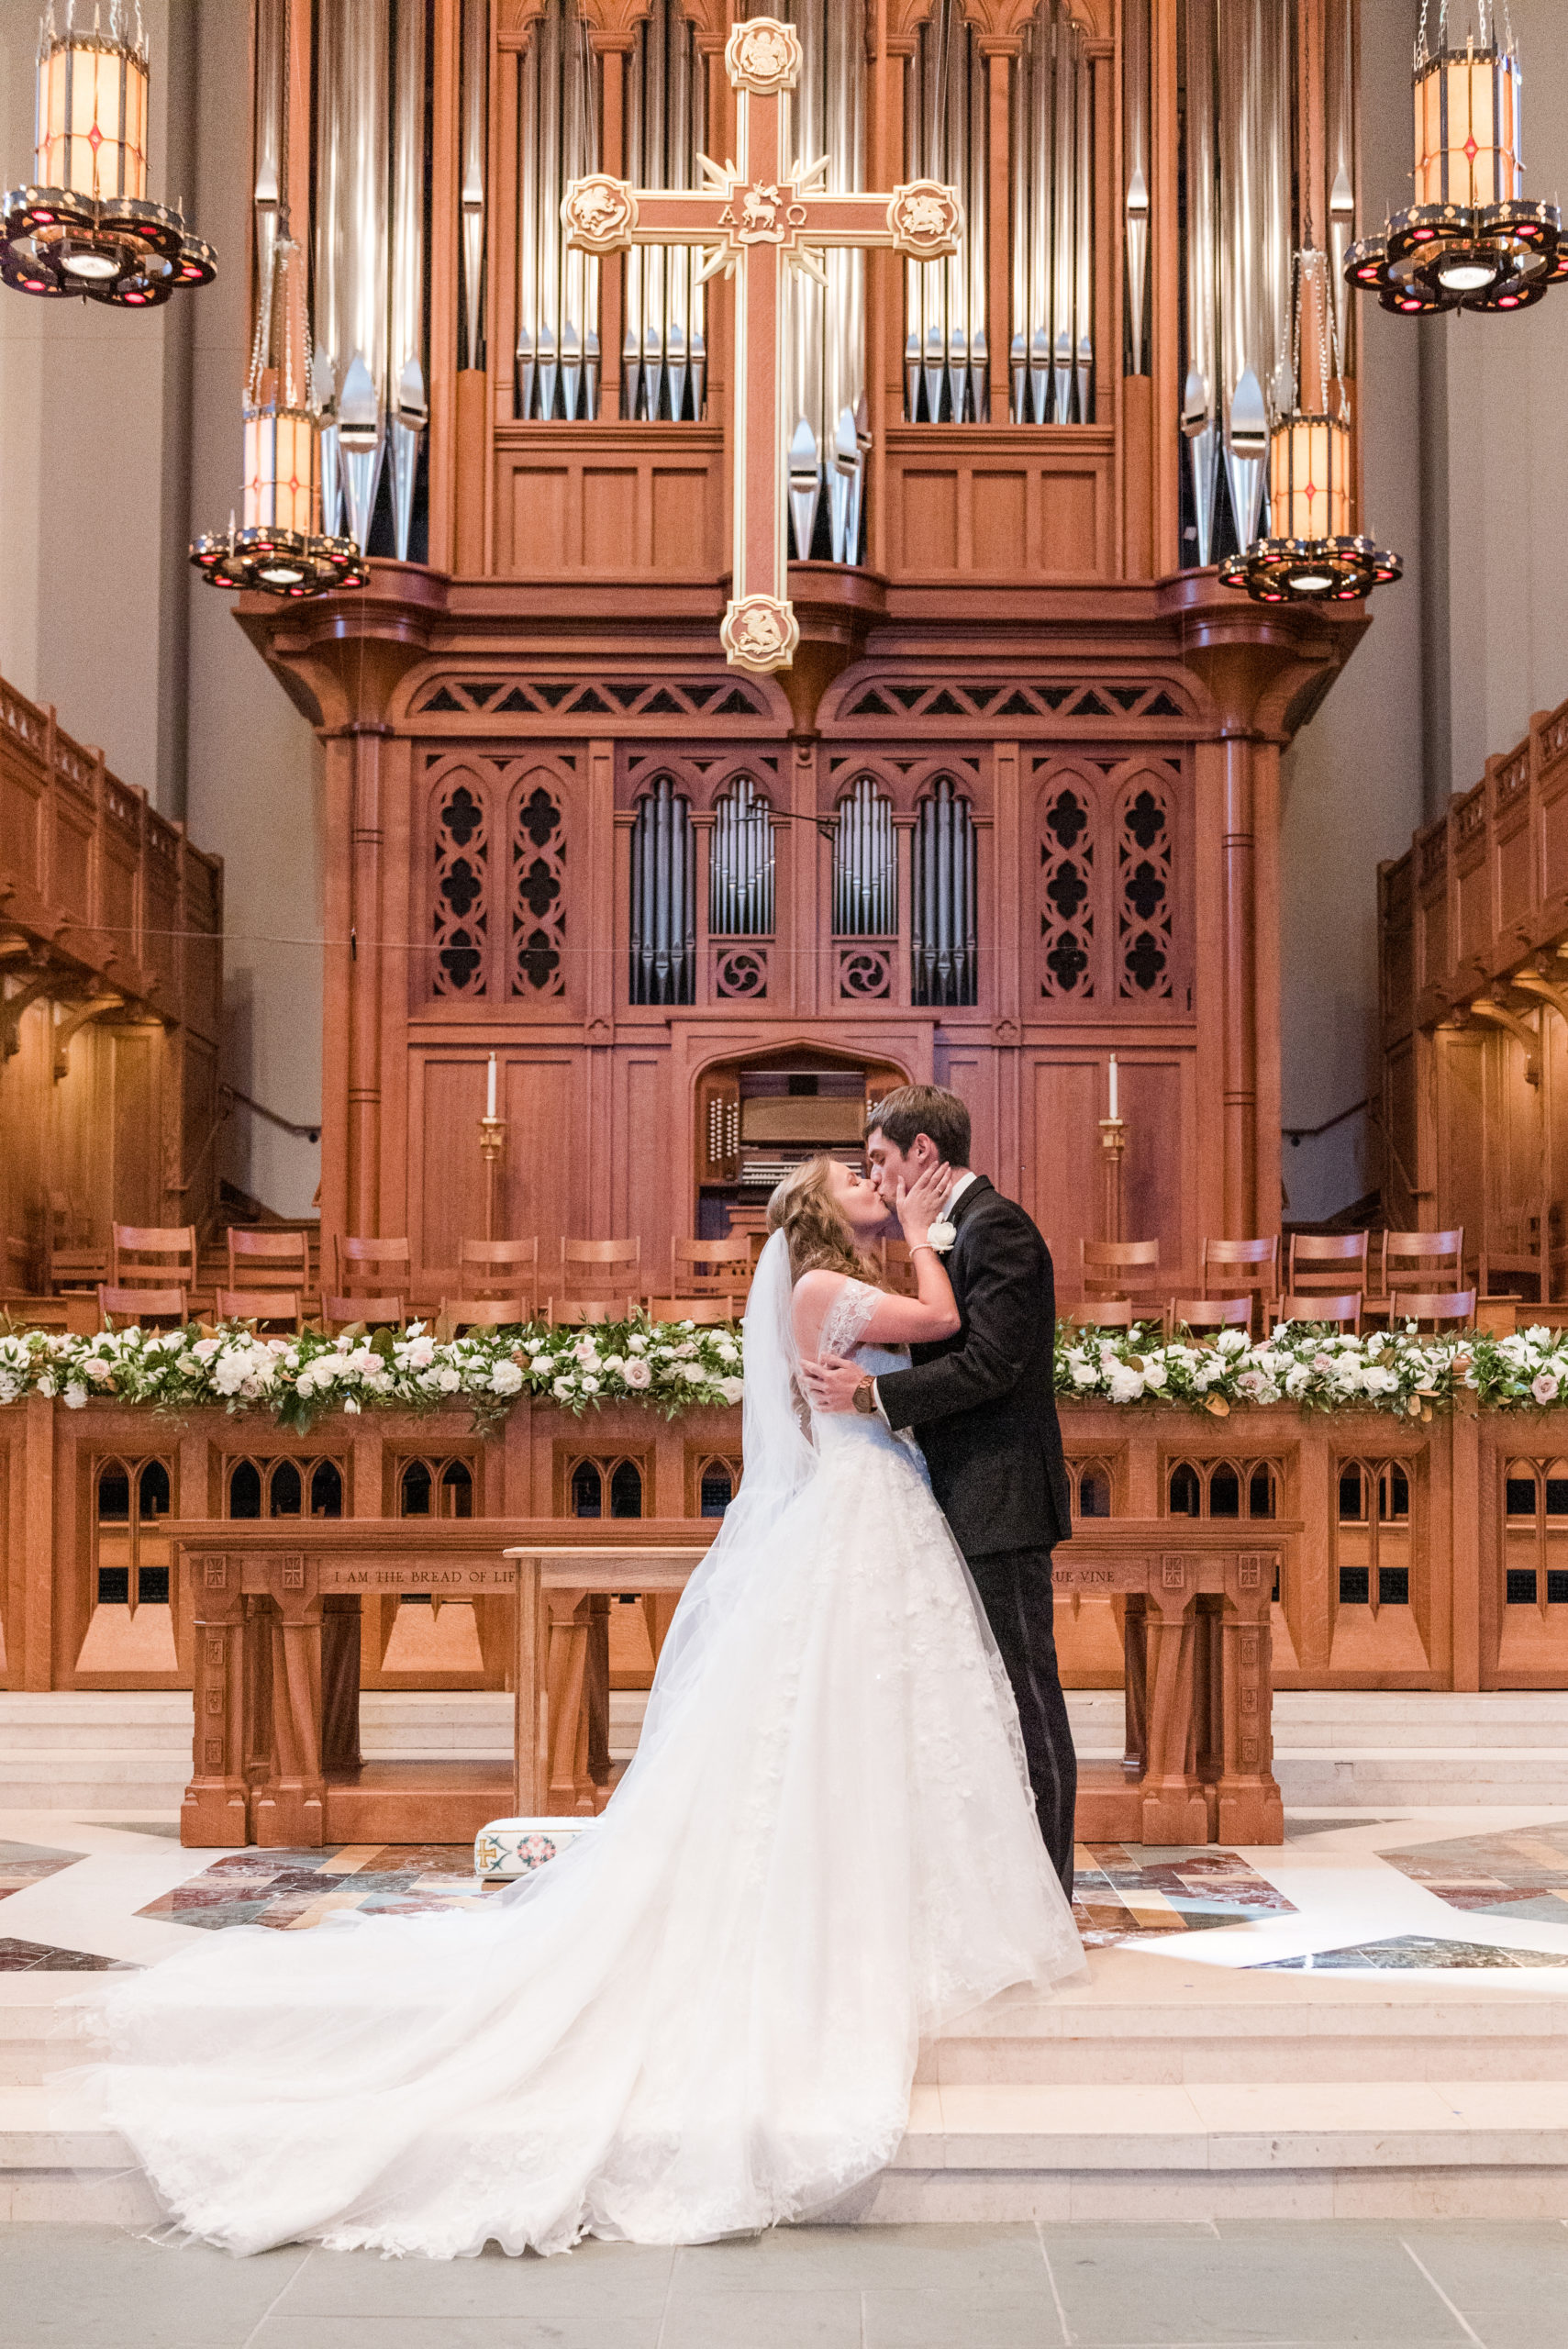 Summer Wedding at Ruby and Covenant Presbyterian Church in Nashville, Tennessee by Sweet Williams Photography, a wedding and portrait photographer.